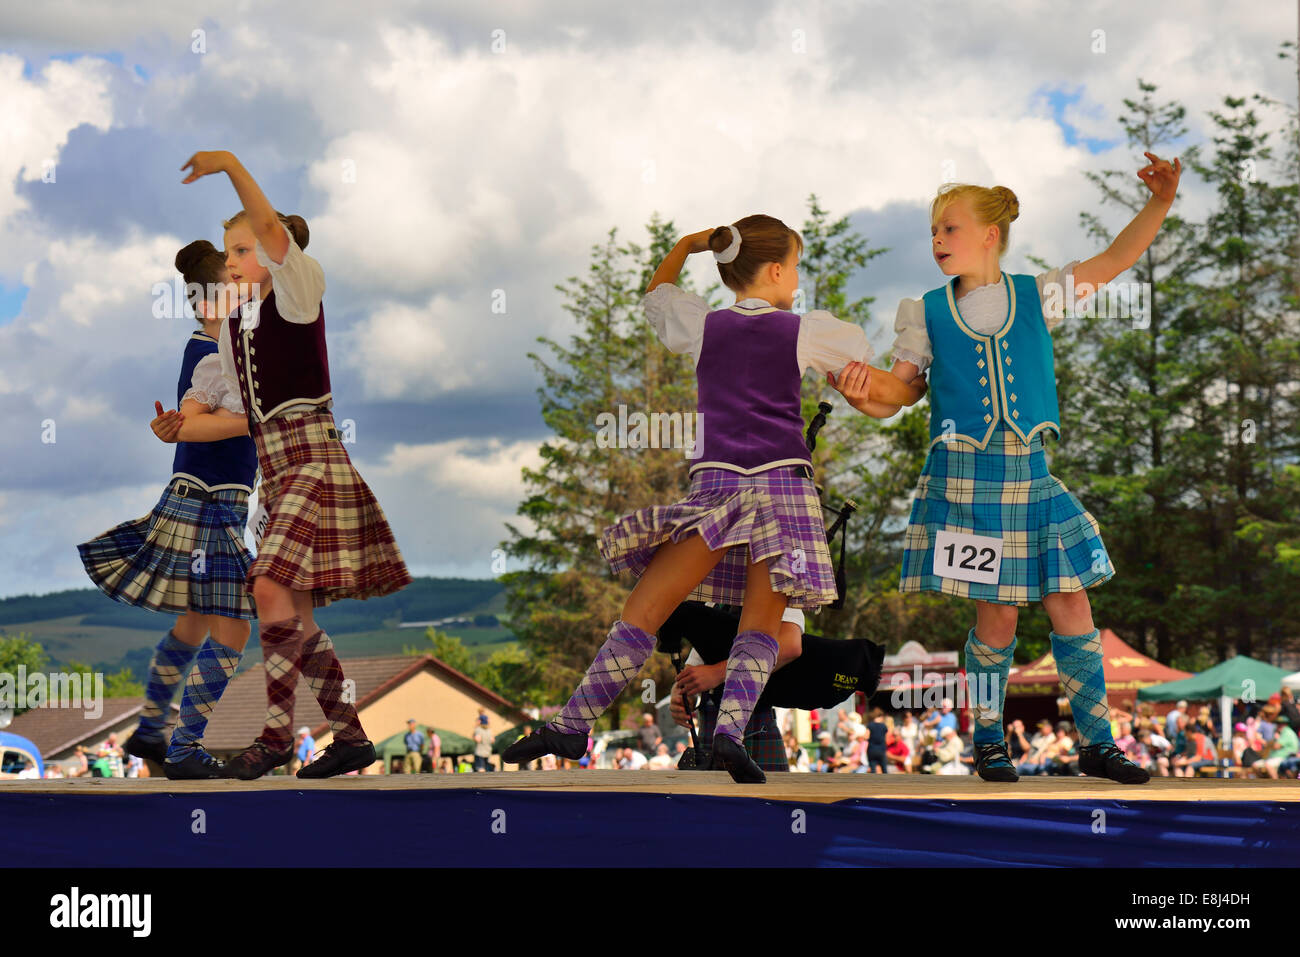 Girls in a Highland Dancing competition at the Highland Games, Dufftown, Moray, Highlands, Scotland, United Kingdom - Stock Image